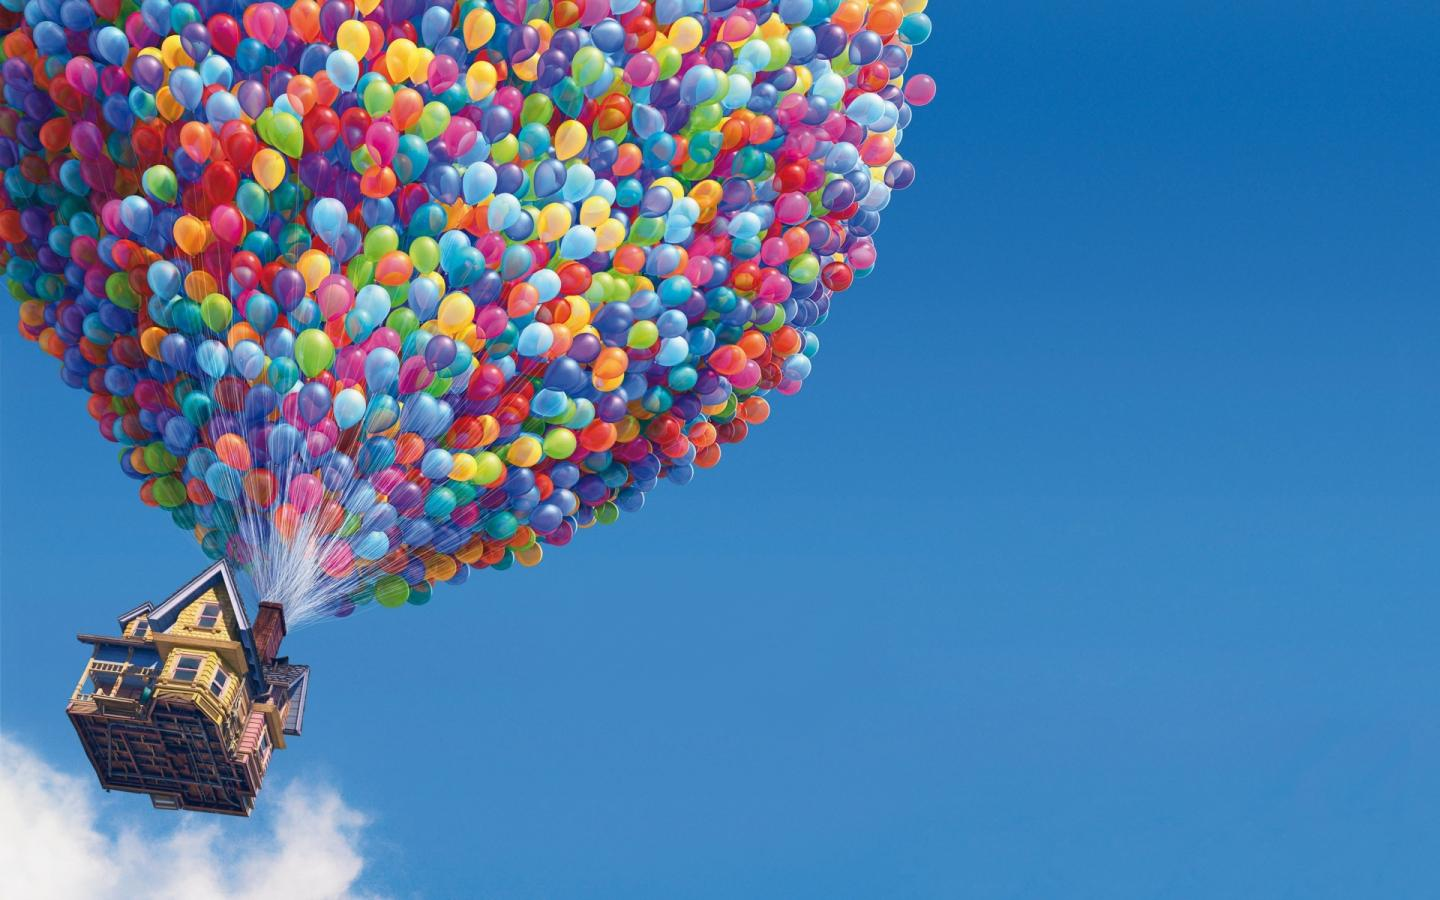 Up Pixar Animation HD Wallpapers Download Free Wallpapers in HD